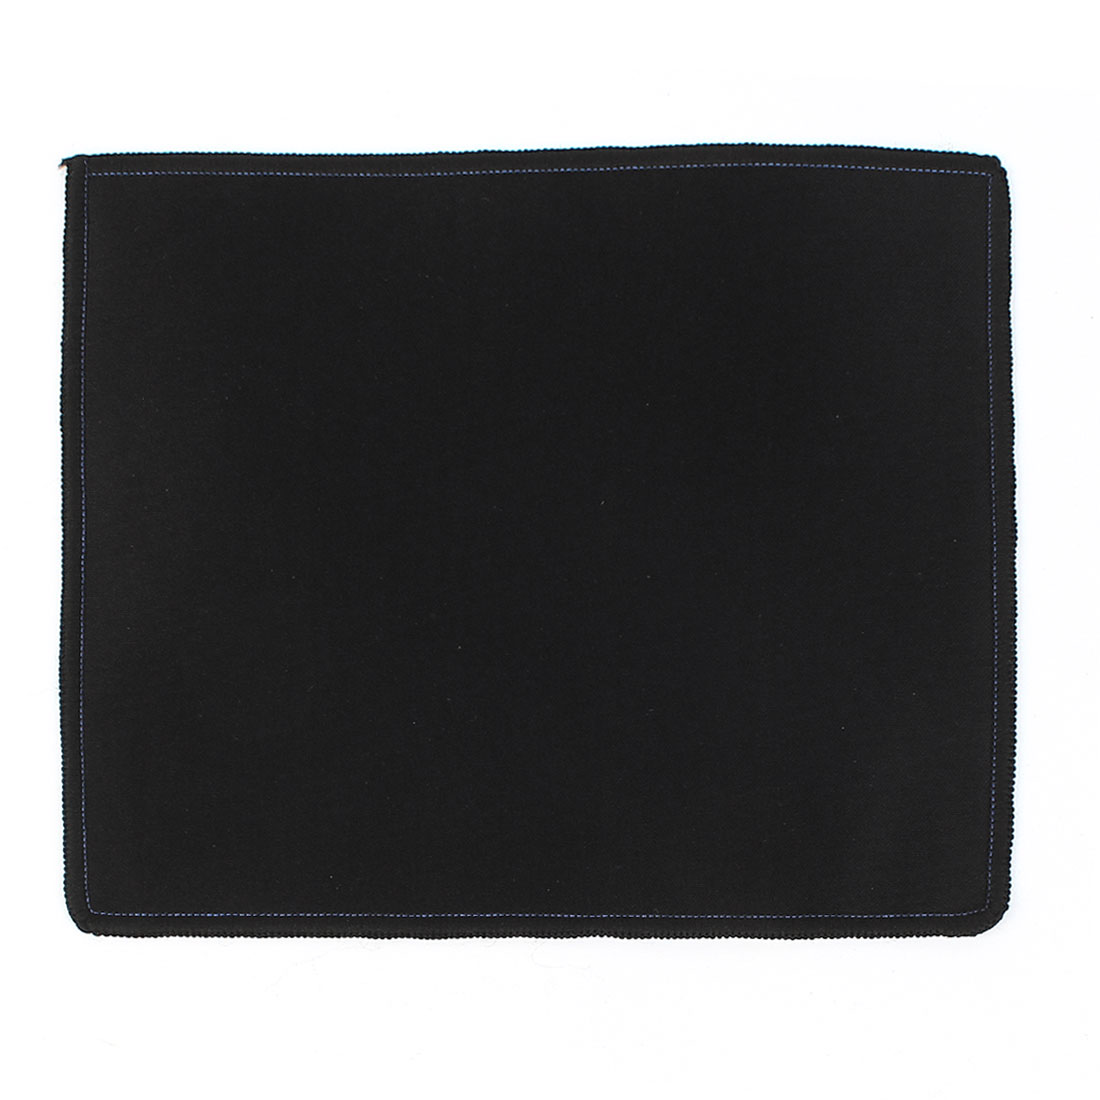 Black 25cmx21cm Rectangle Nonslip Soft Neoprene PC Desktop Gaming Mouse Pad Mat